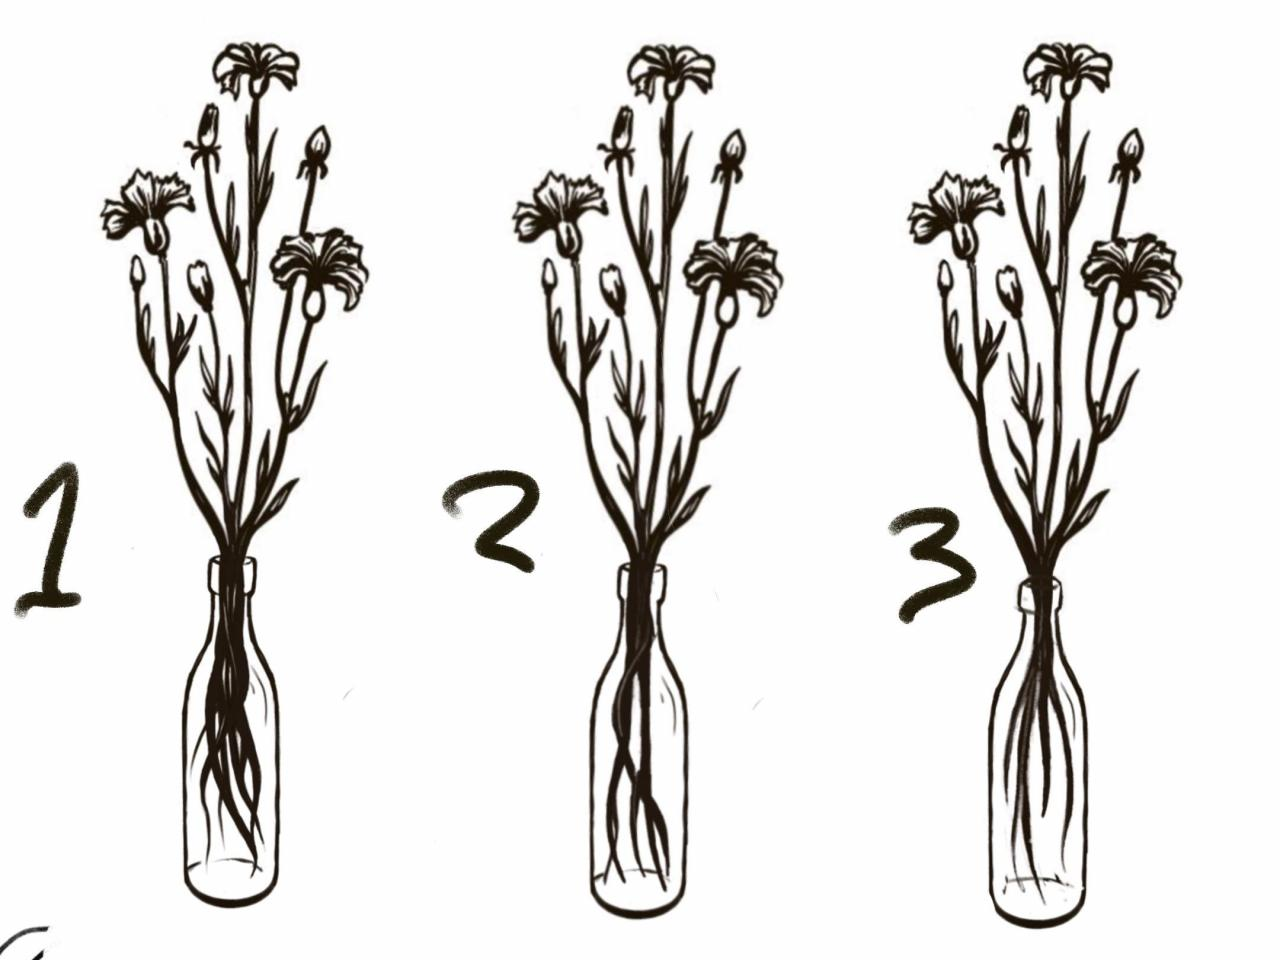 What roots look the best? Let me know what you think of these flowers overall!